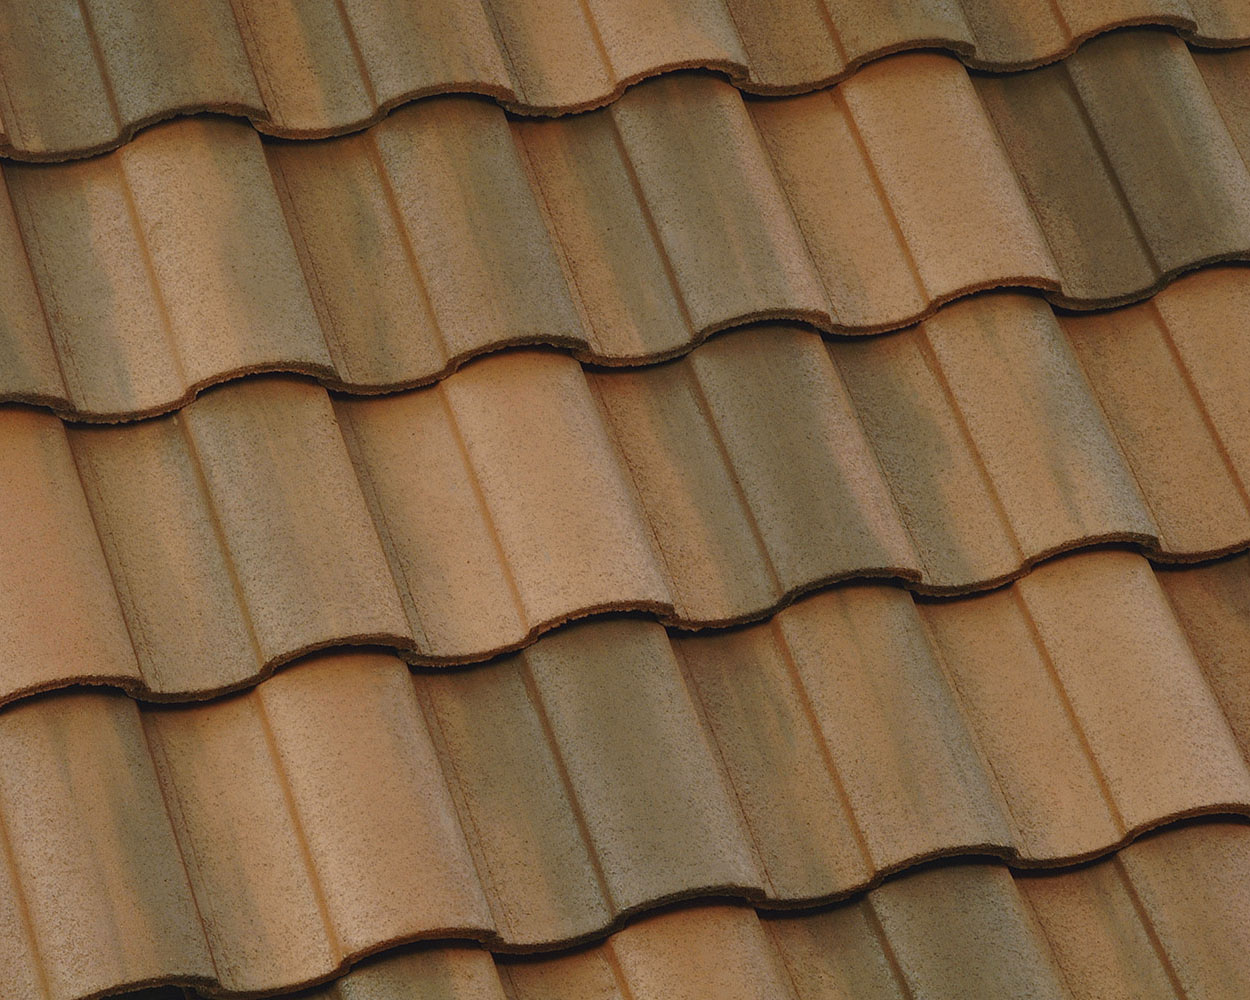 Sunrise blend tile roof color swatch